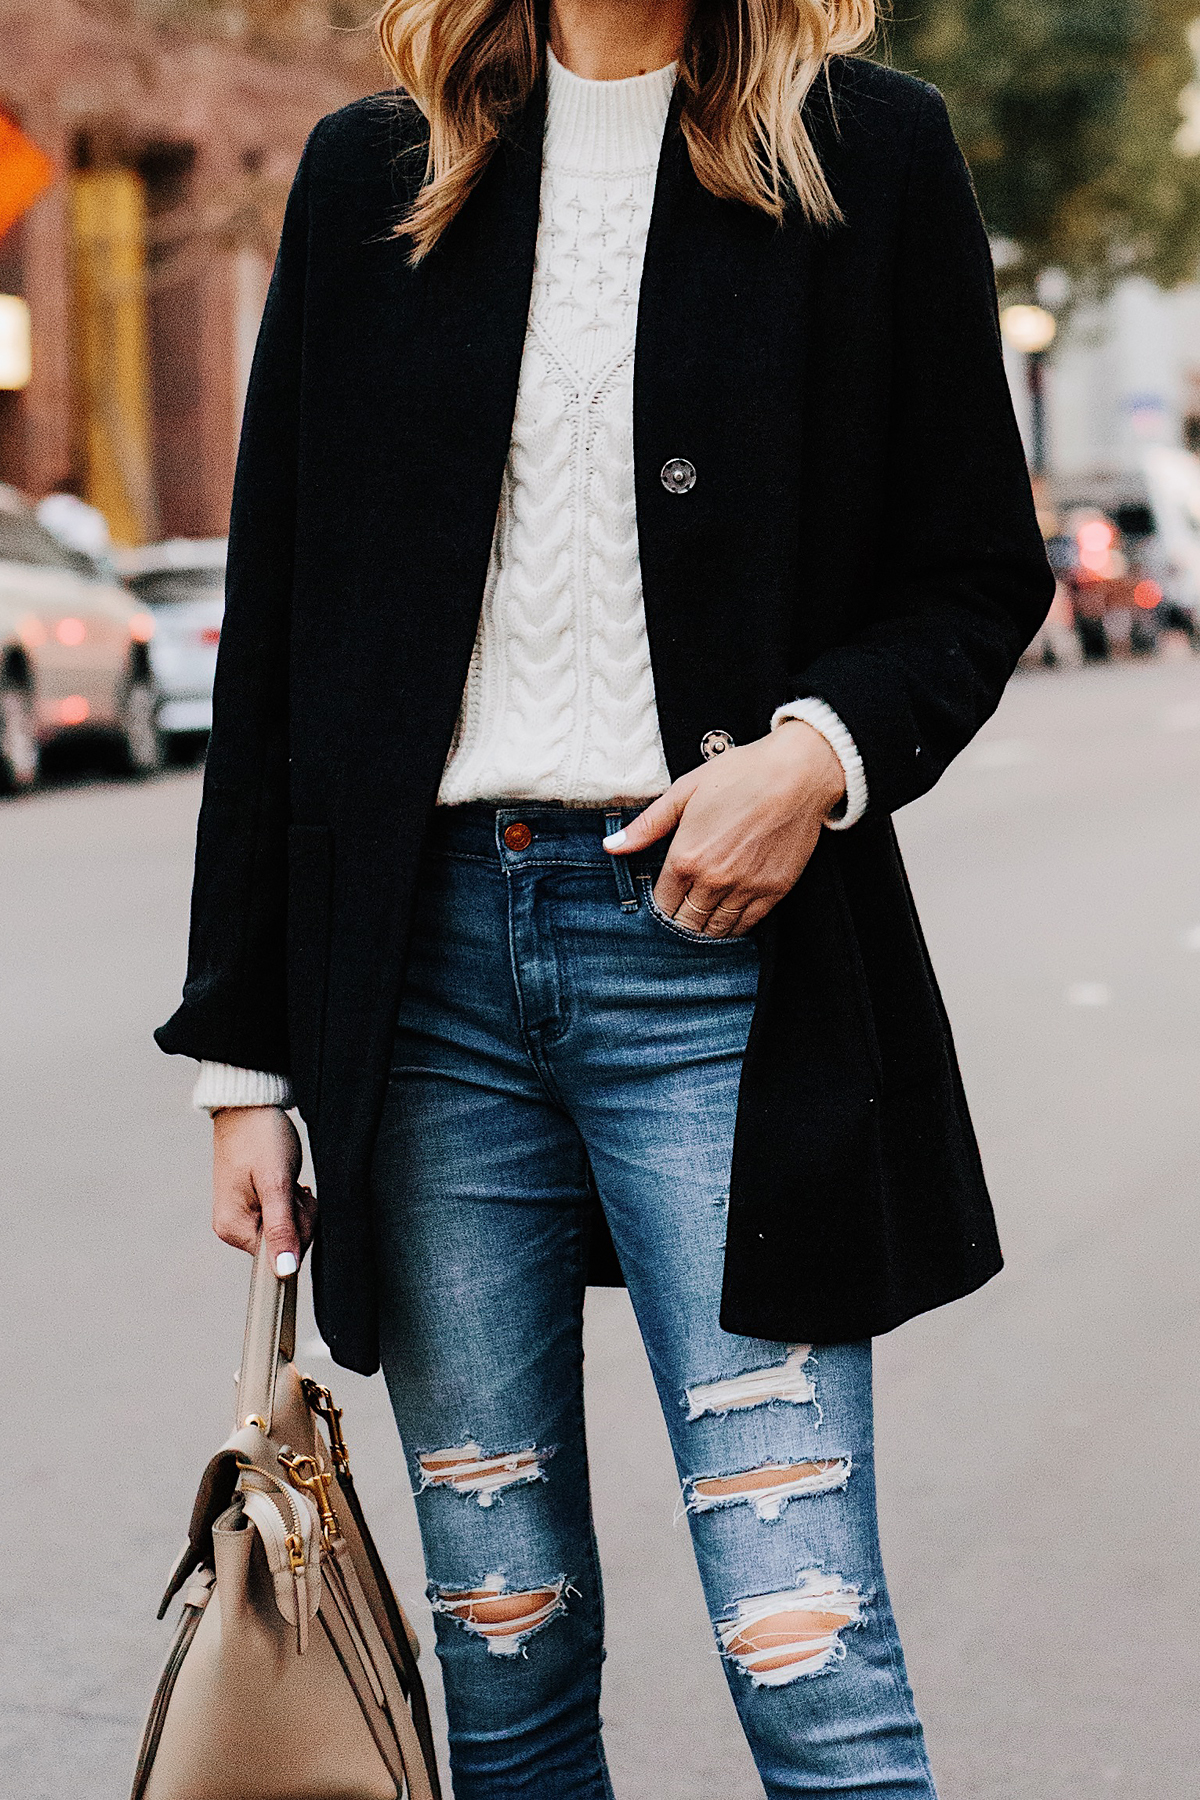 Blonde Woman Wearing Abercrombie Black Wool Coat Cable Knit White Sweater Denim Ripped Skinny Jeans Outfit Fashion Jackson San Diego Fashion Blogger Street Style